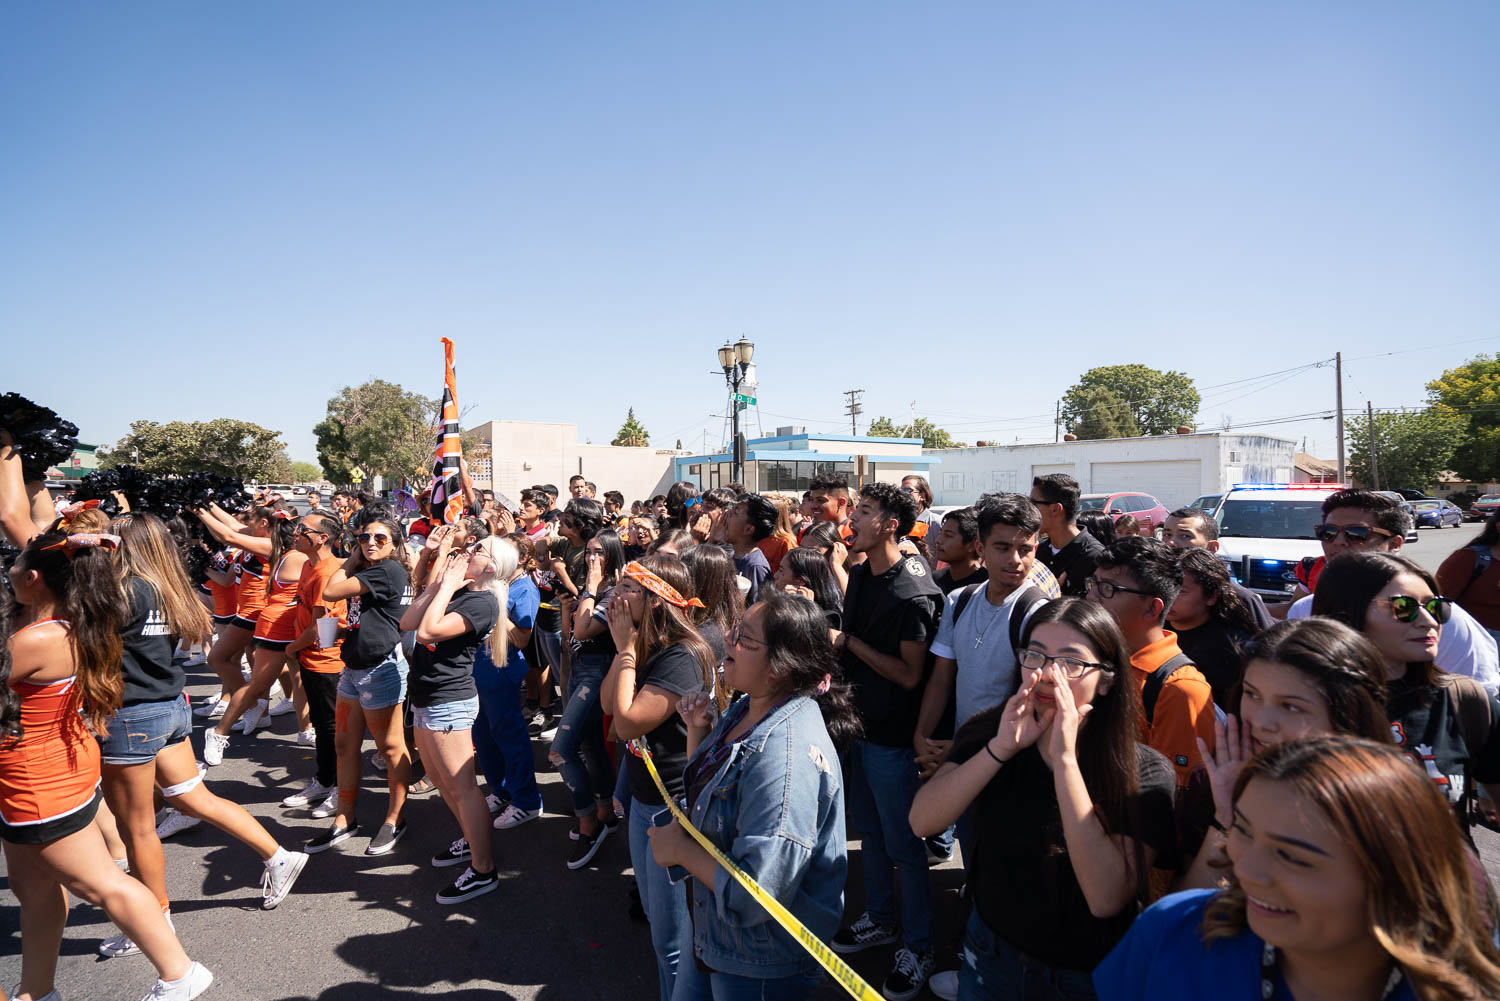 20180921_HomecomingRally_006.jpg